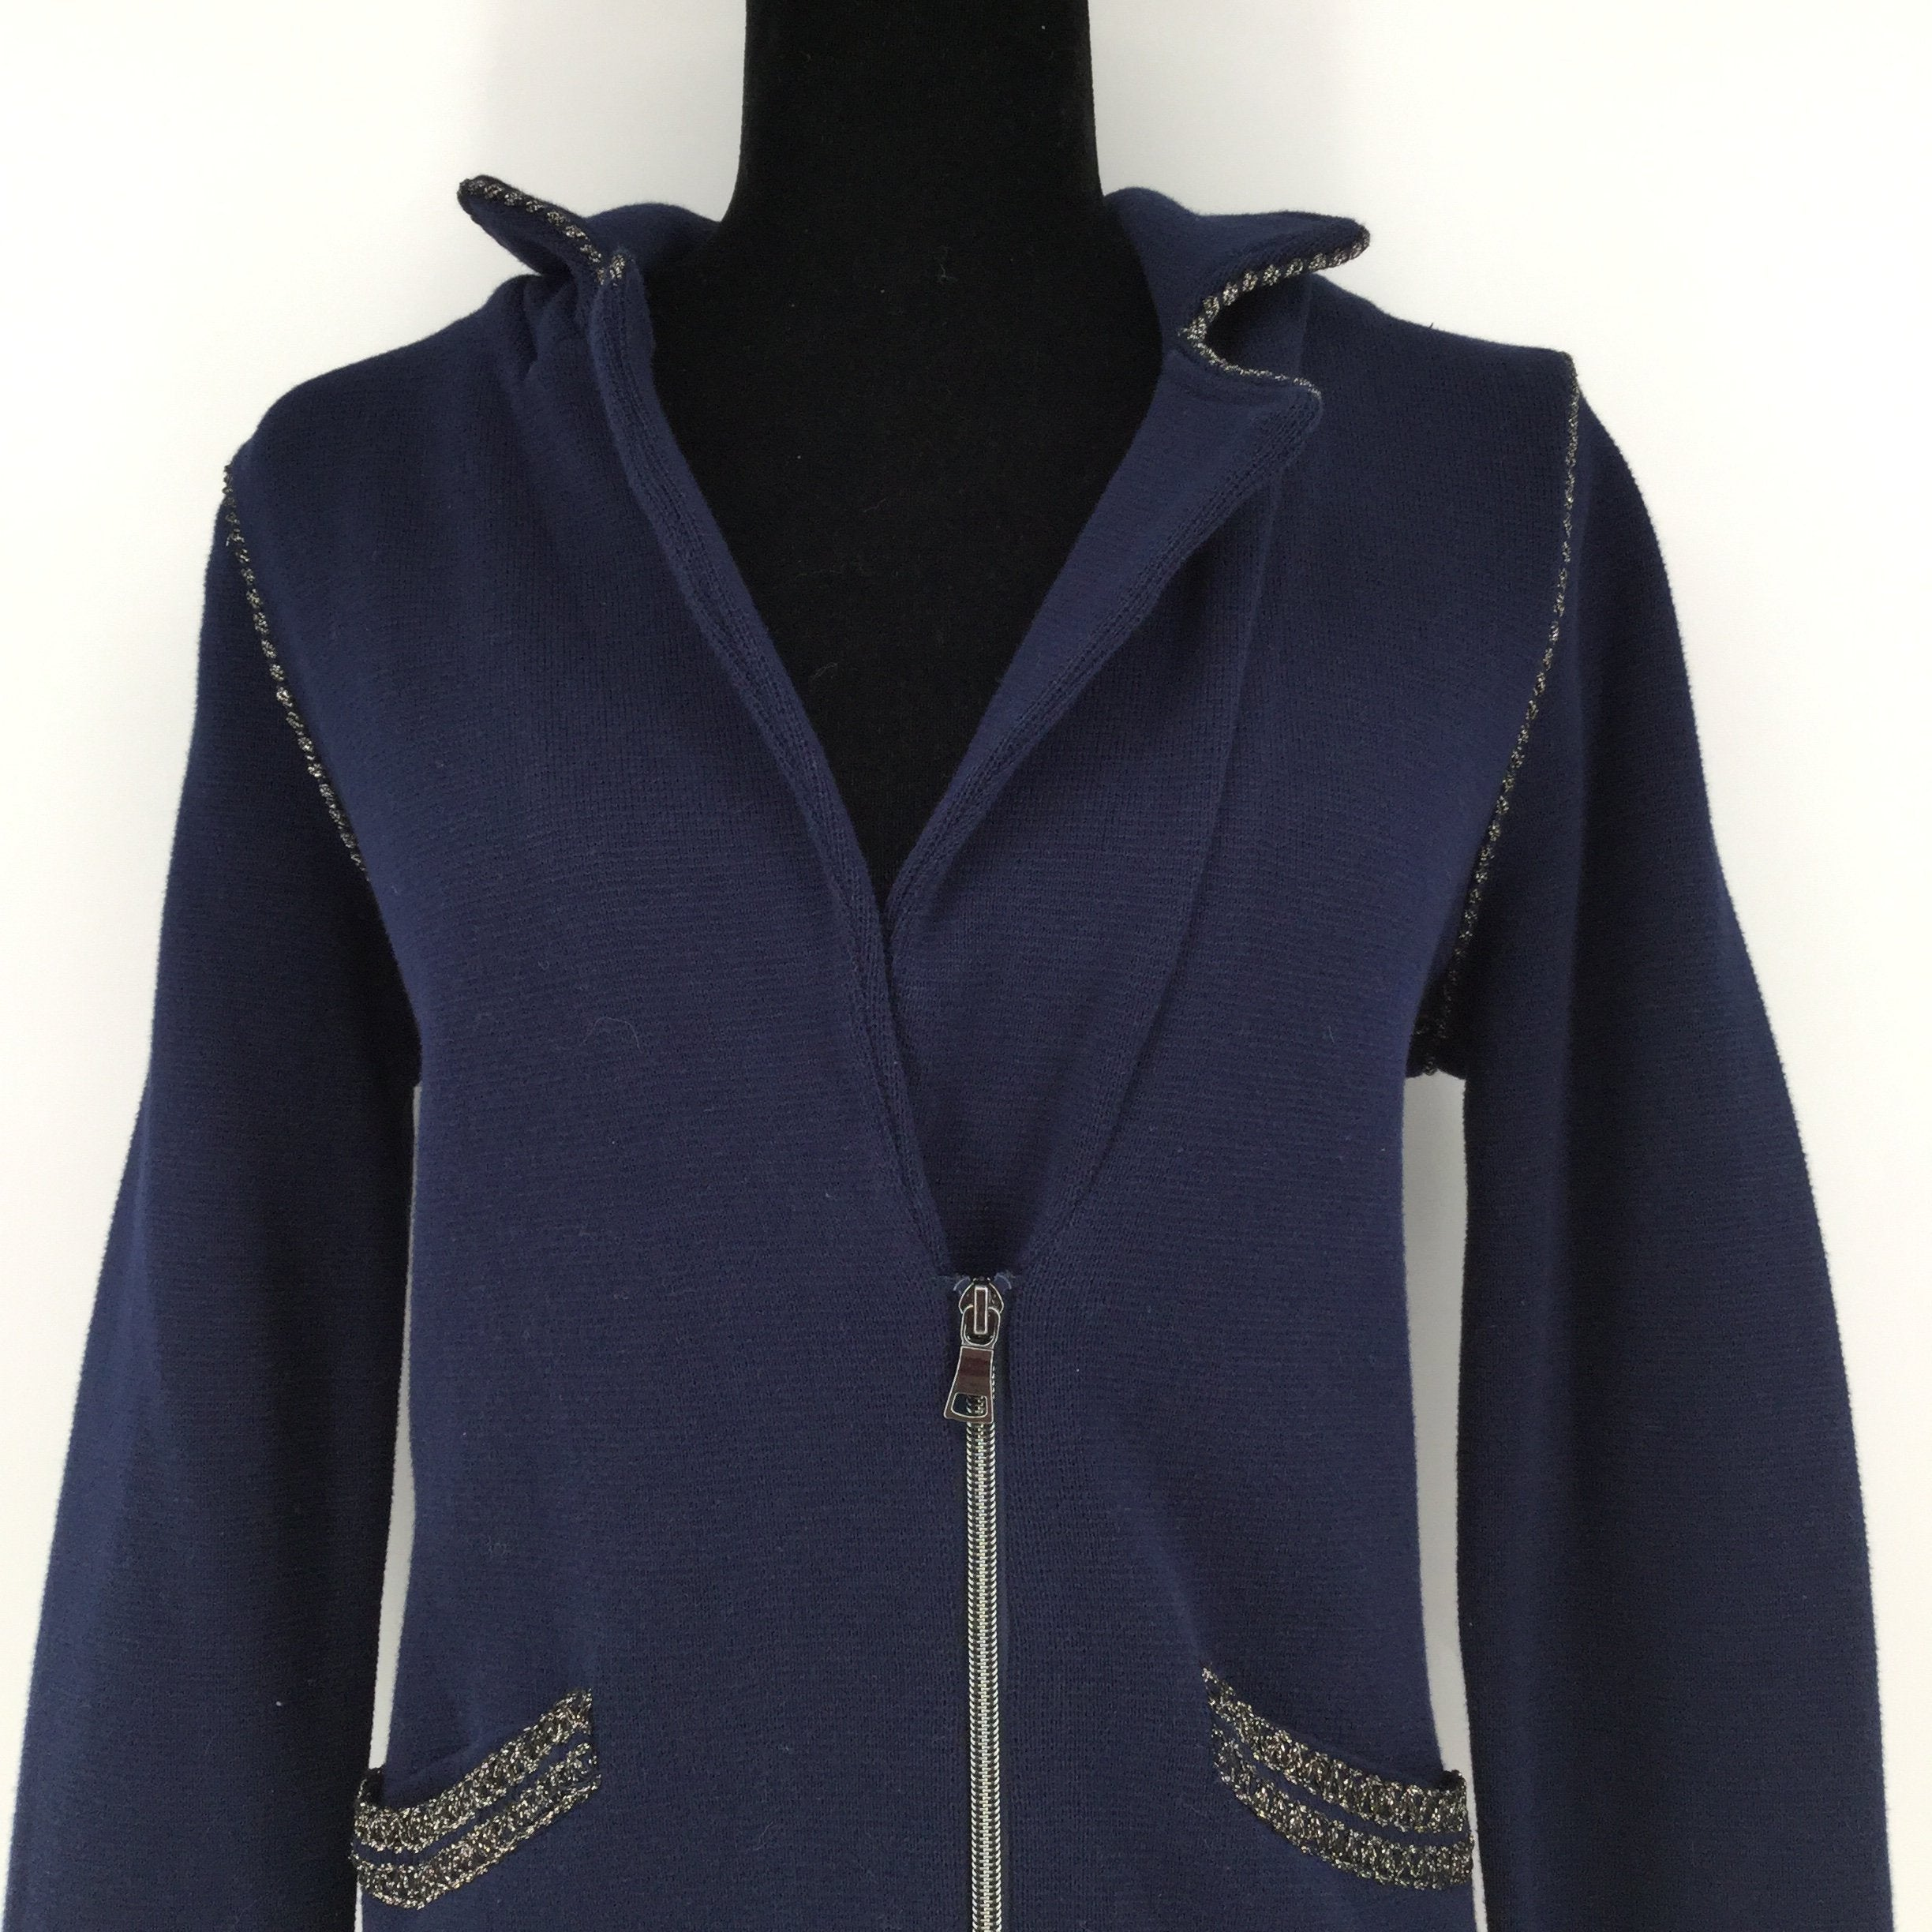 Chicos Blazer Jacket, Blue, Size: Medium - <P>THIS CLASSY CHICOS BLAZER JACKET IS NAVY BLUE WITH SILVER DETAILS ALONG THE SEAMS. IT IS IN VERY GOOD CONDITION WITH THE ORIGINAL TAG STILL ATTACHED.</P>